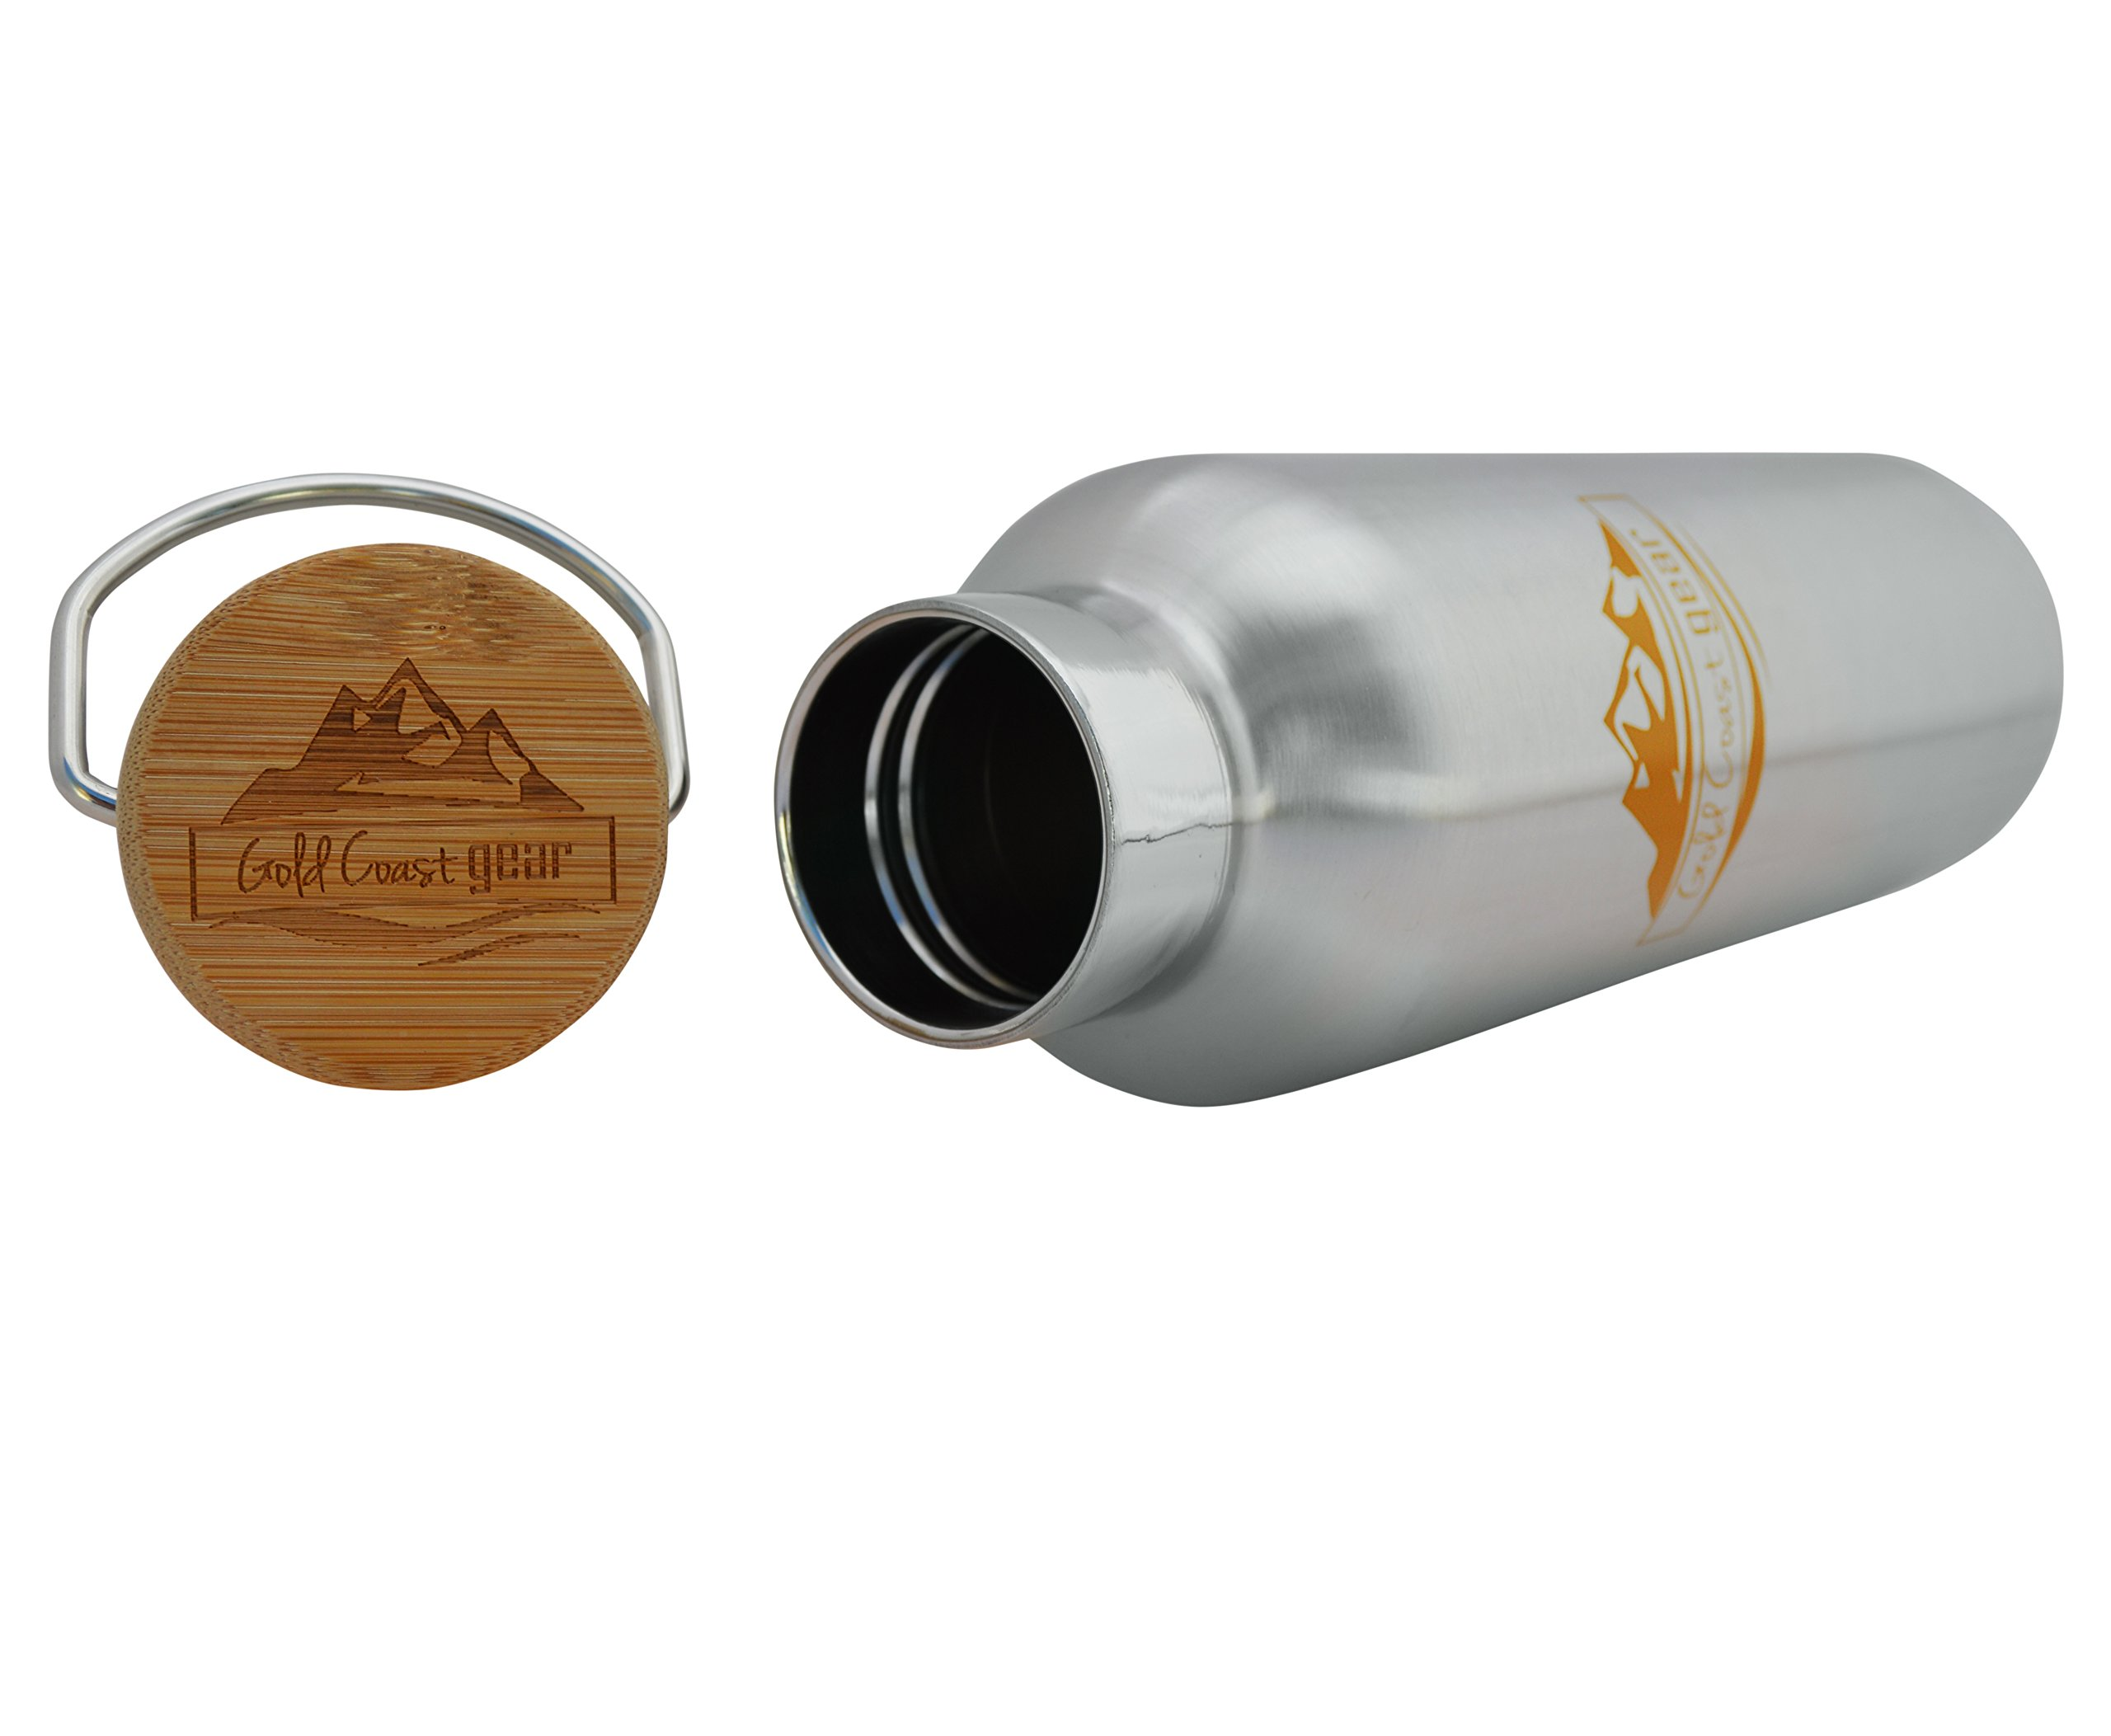 Vacuum Insulated Stainless Steel Water Bottle ( 25 OZ / 750 ML ). Zero Condensation! (750ml) by Gold Coast gear (Image #5)